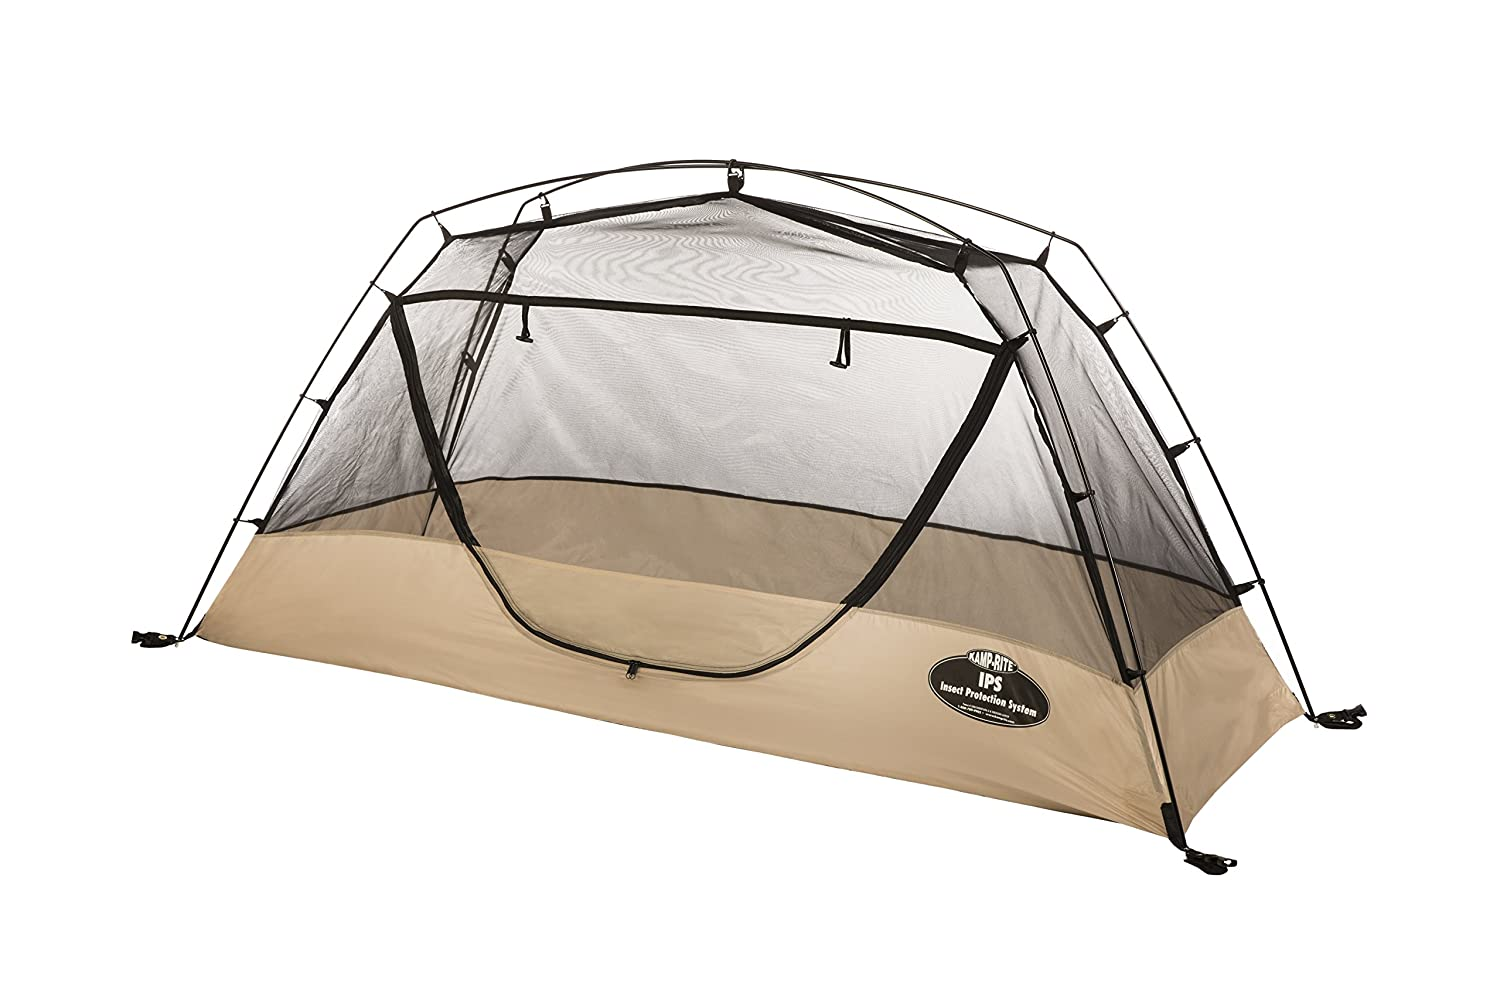 Amazon.com  K&-Rite Insect Protection System  C&ing Cots  Sports u0026 Outdoors  sc 1 st  Amazon.com & Amazon.com : Kamp-Rite Insect Protection System : Camping Cots ...